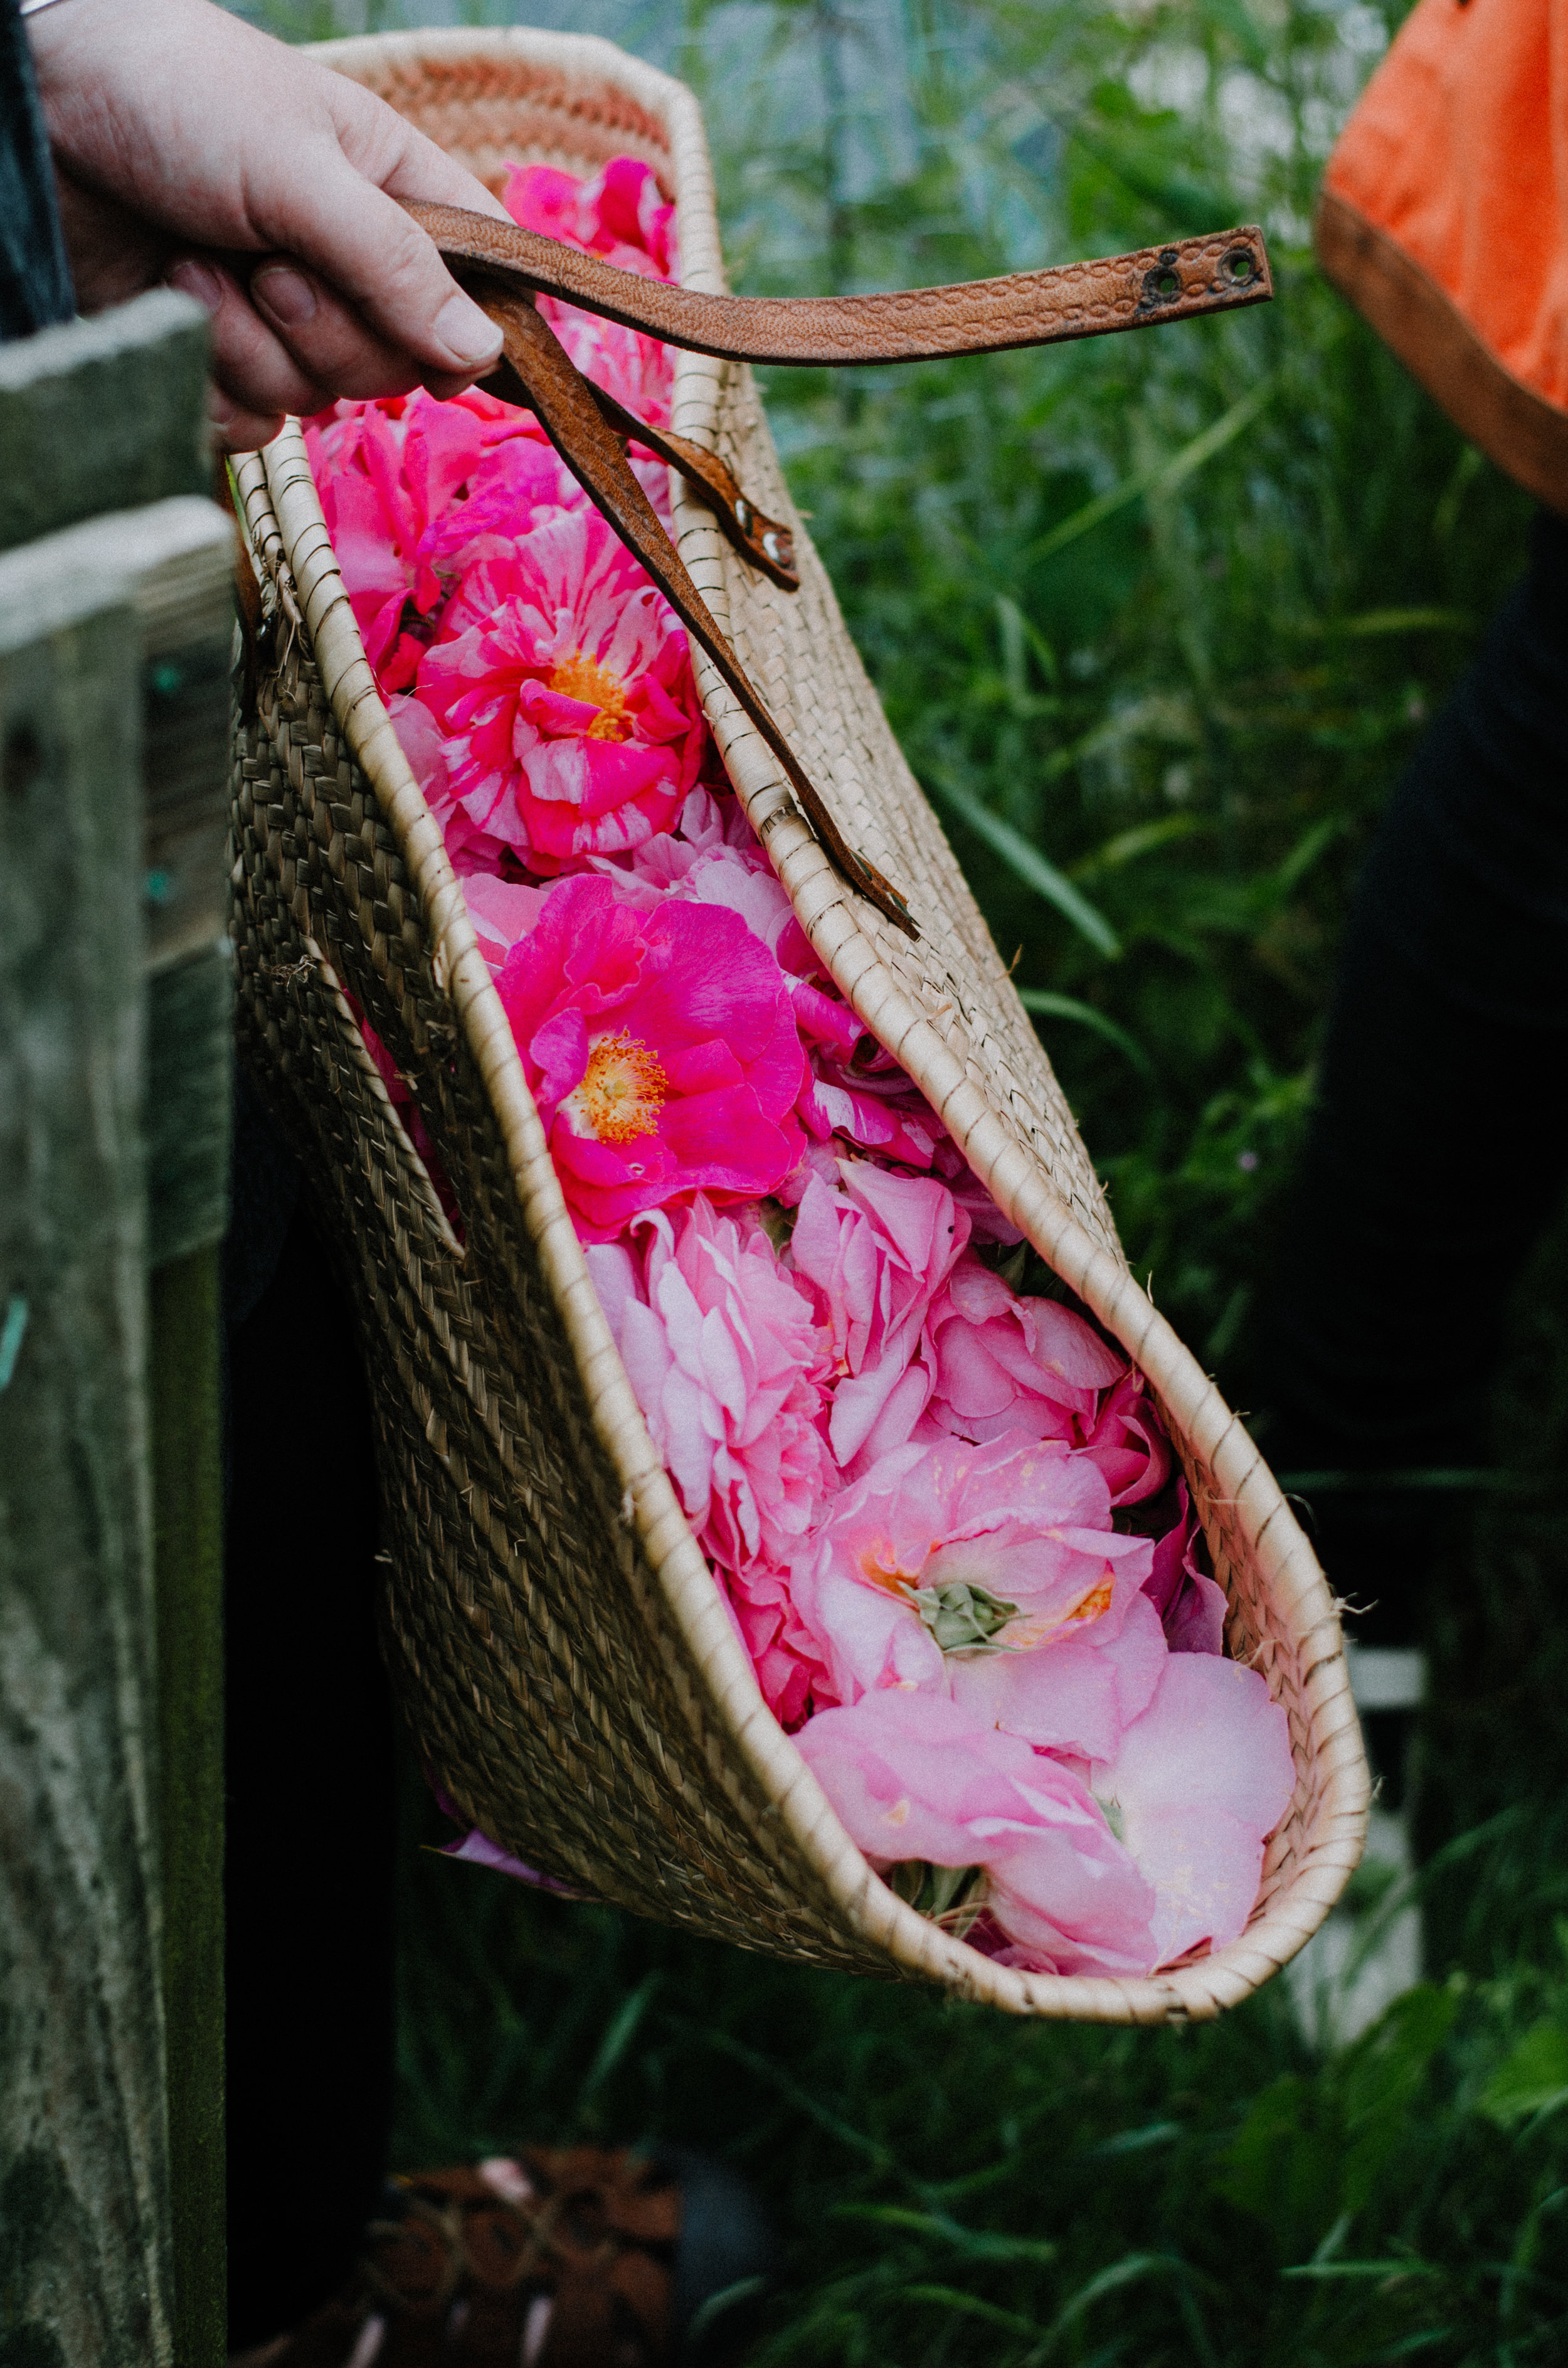 Fierce Botanics - Rose Picking - Aiste Saulyte Photography-120.jpg